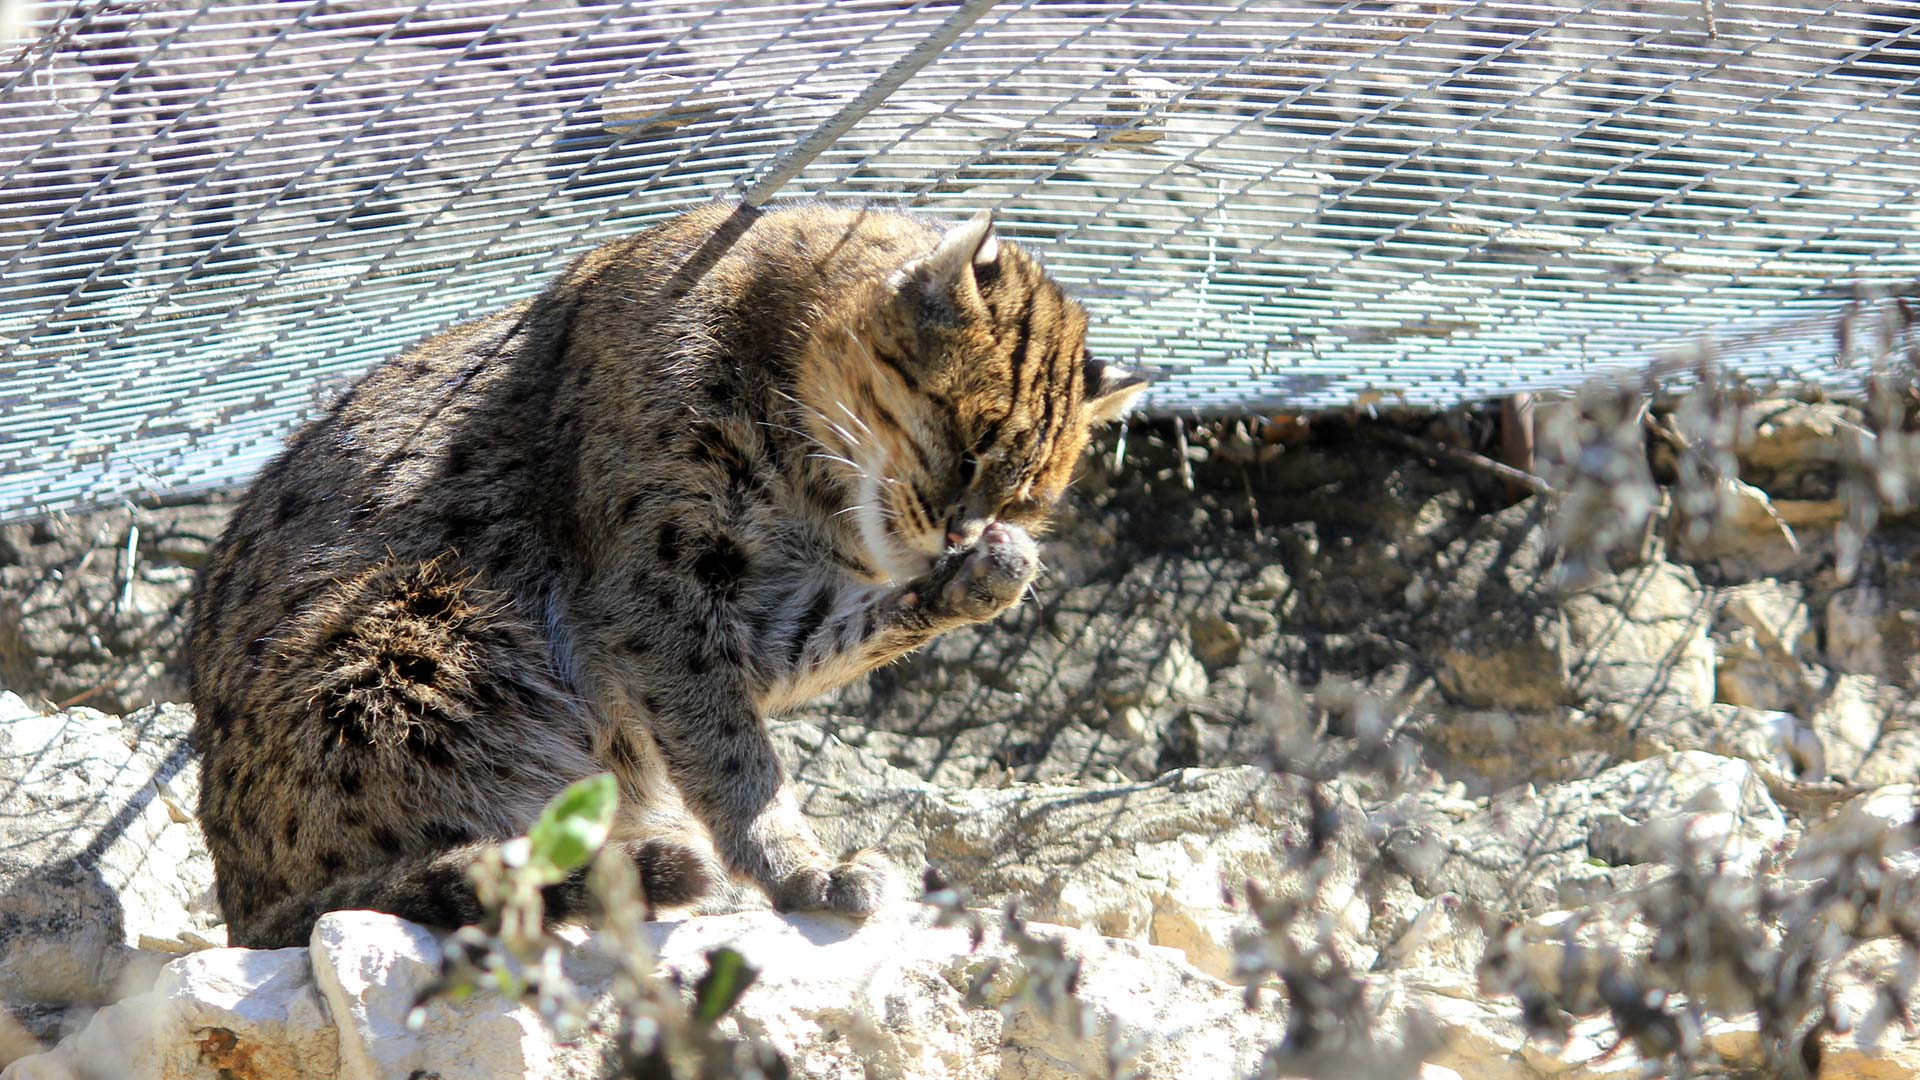 The fishing cat's habitat in South India, Sri Lanka and Bangladesh is being disrupted by aquaculture and economic development, a UA professor says.